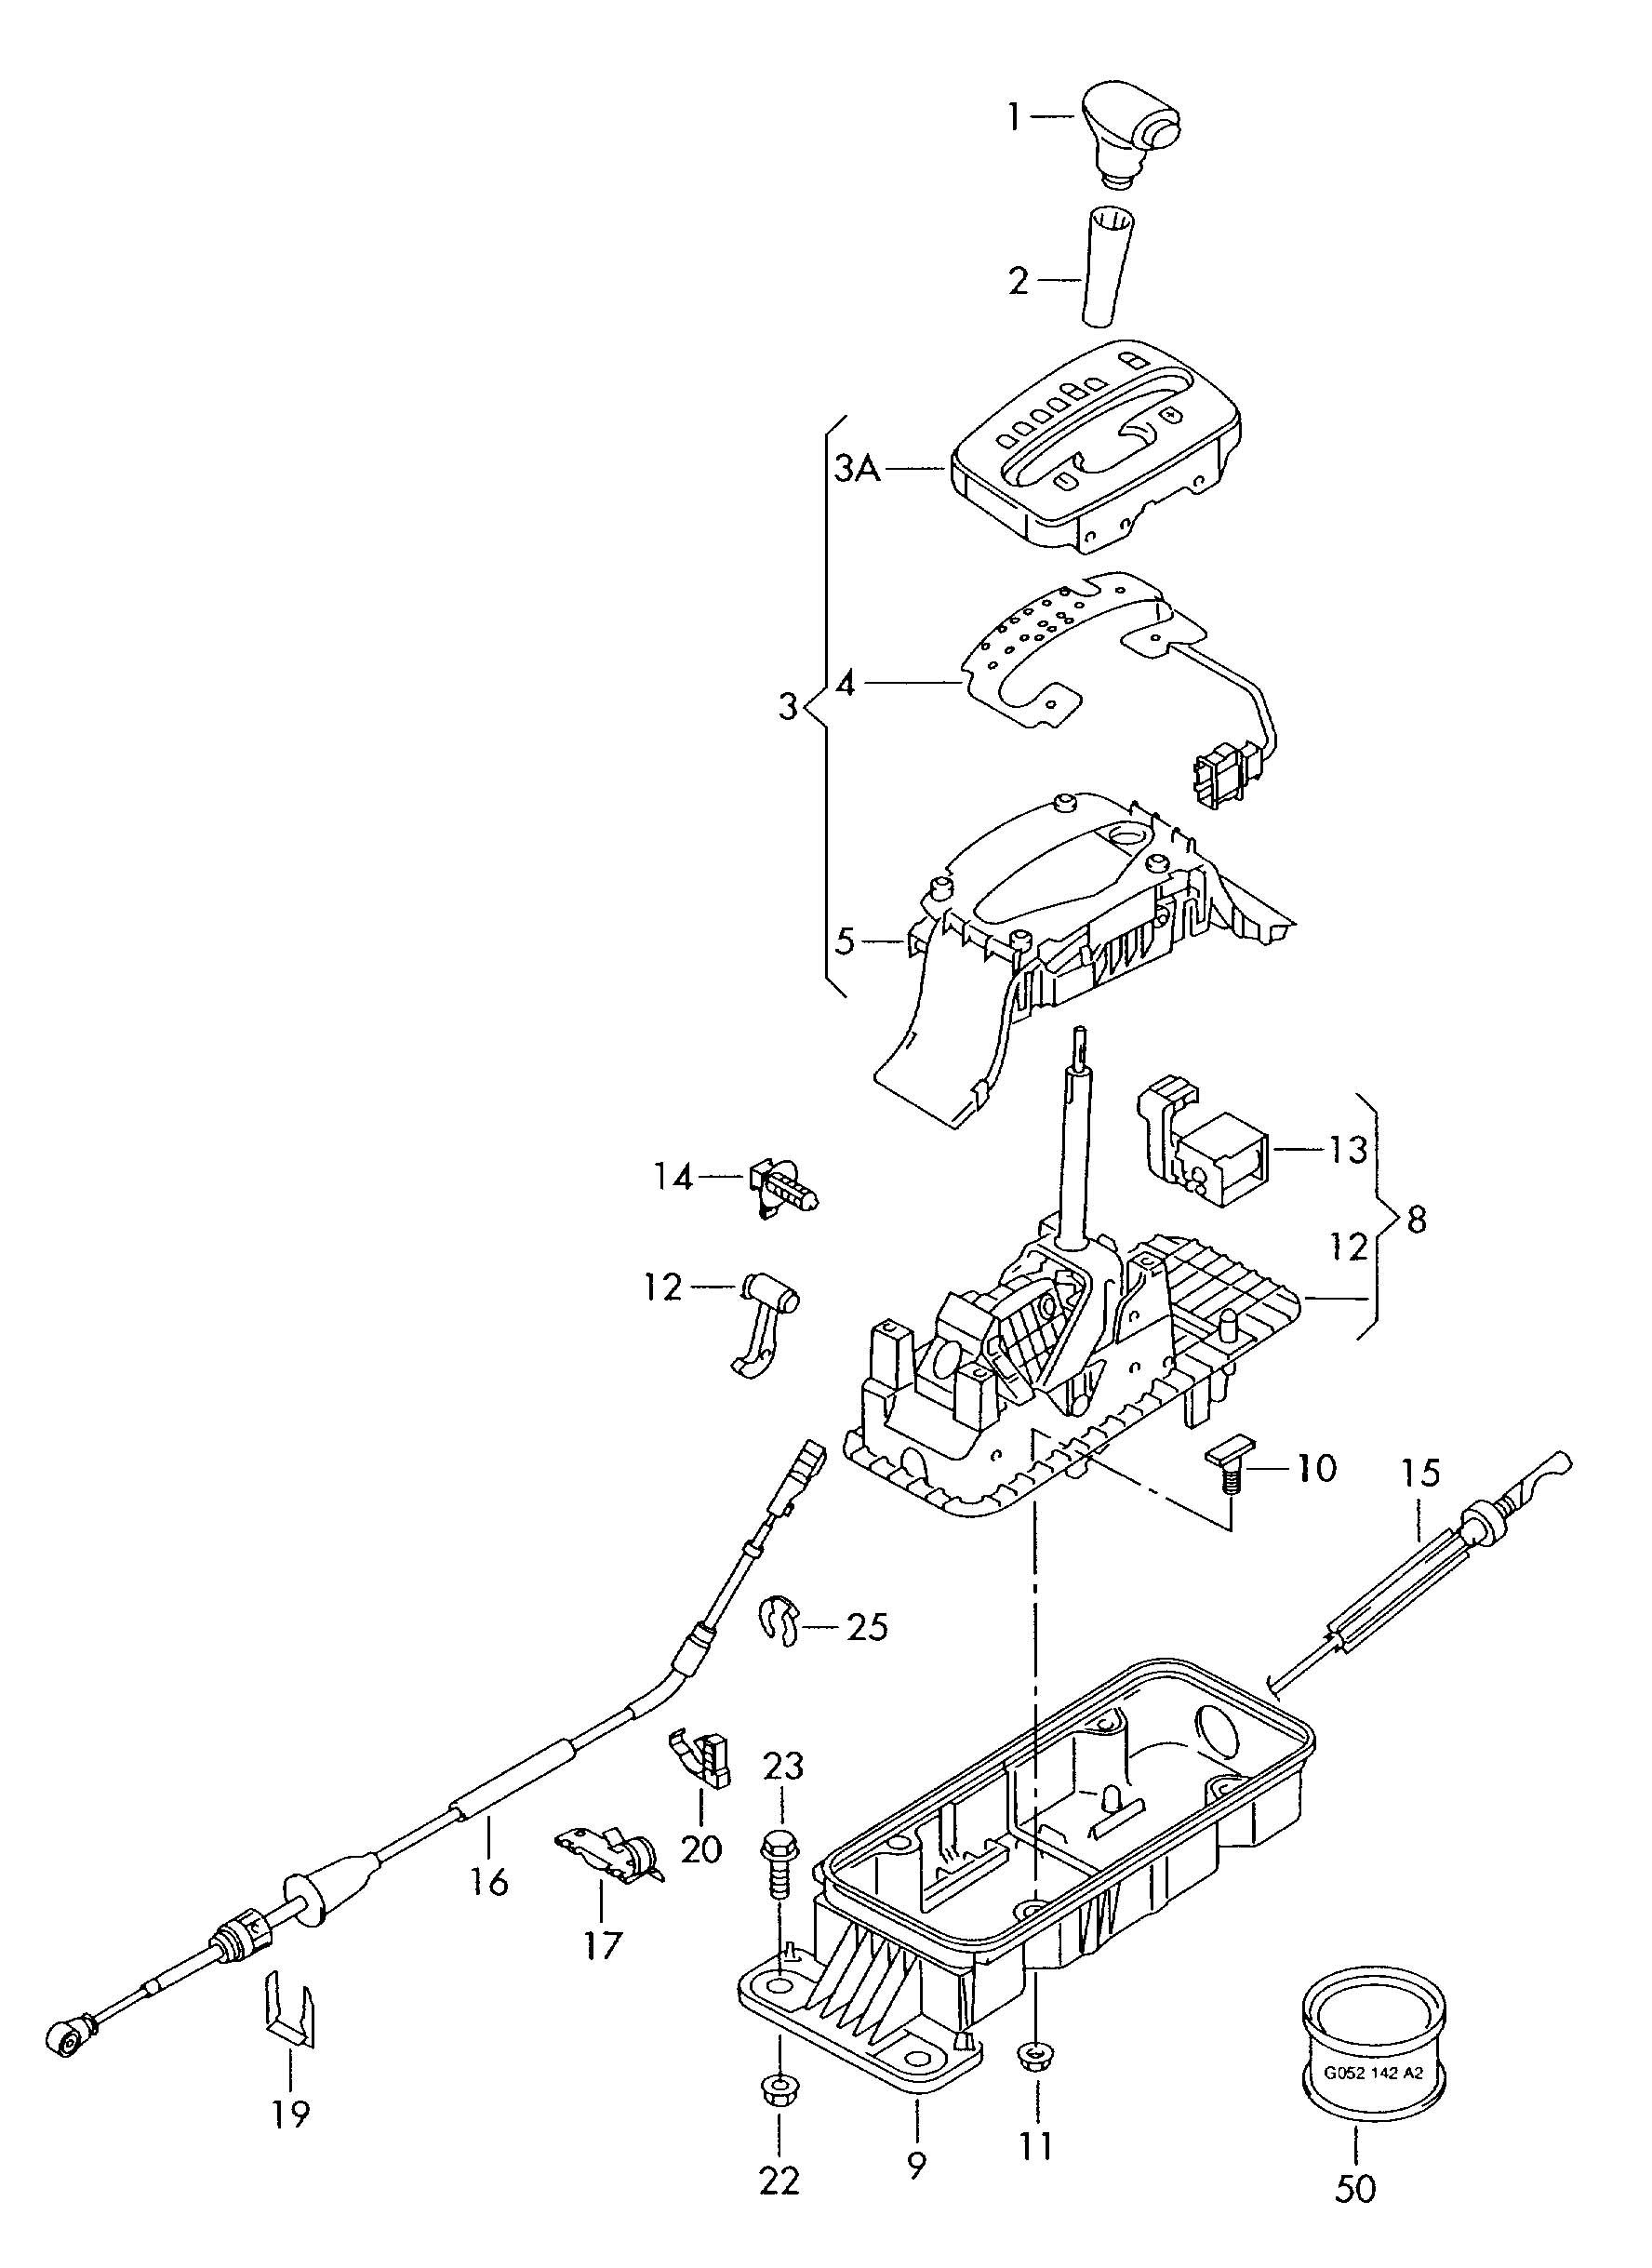 Shift Mechanism For Vehicles With Tiptronic 5 Speed